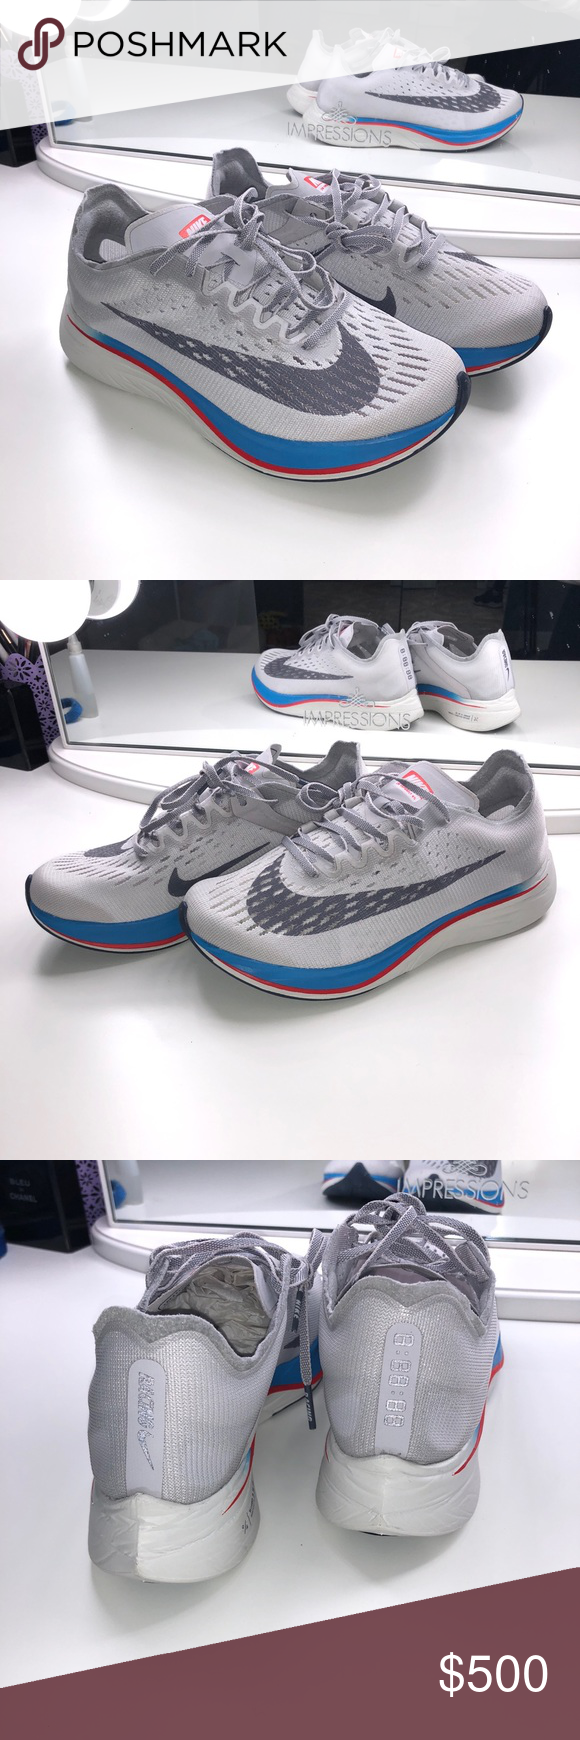 c62843f3add4 Nike Zoom Vaporfly 4% Nike Zoom Vaporfly 4% Vast Grey Light Carbon Elite  Race Running Fly 880847-004 BRAND NEW! Never worn Hard to find shoe Sold  out ...